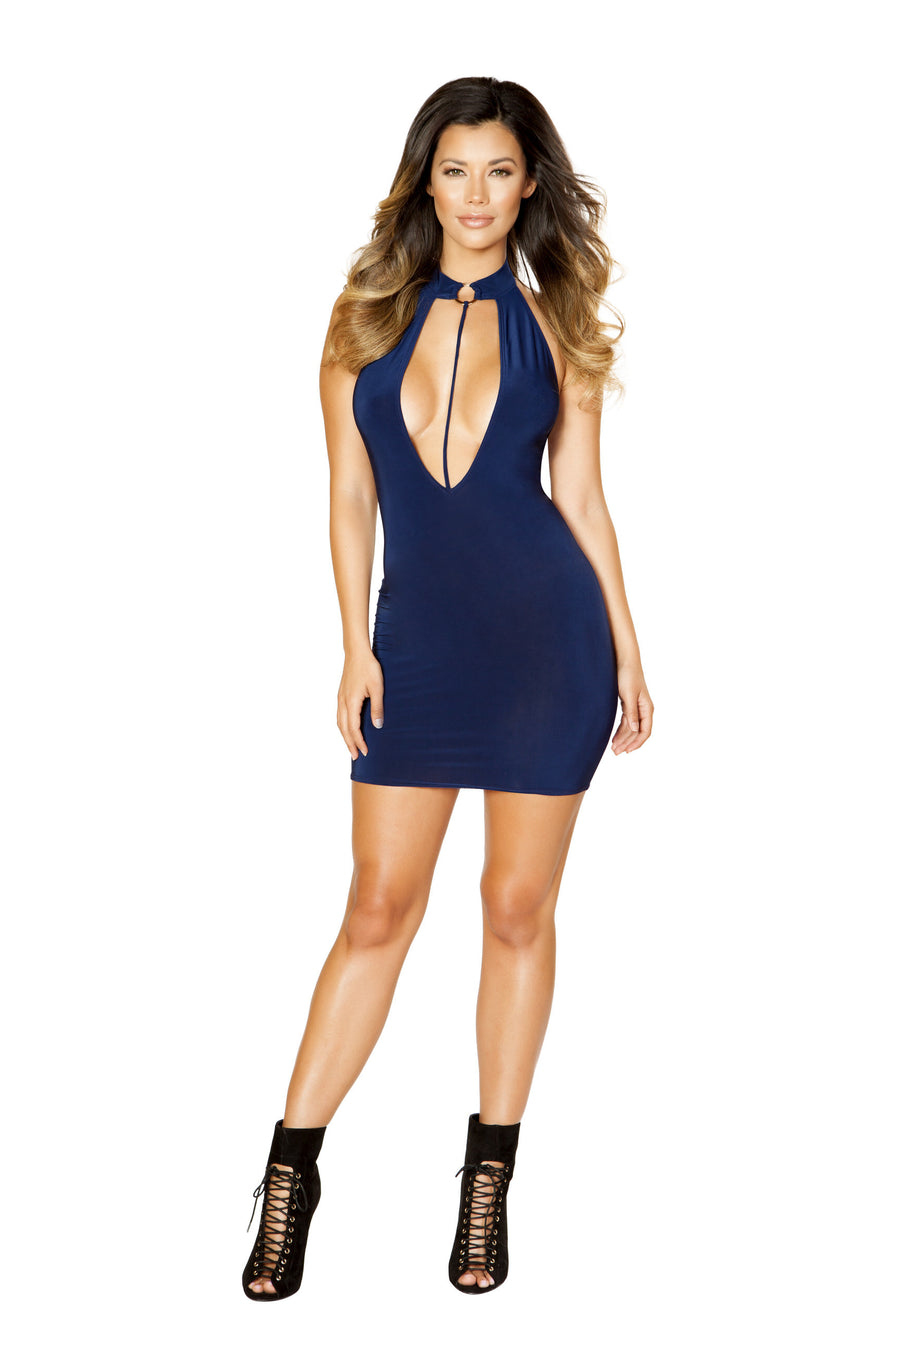 Cutout Dress with Ring Detail and Attached Strap - Mini Dresses, Roma - YourLamode